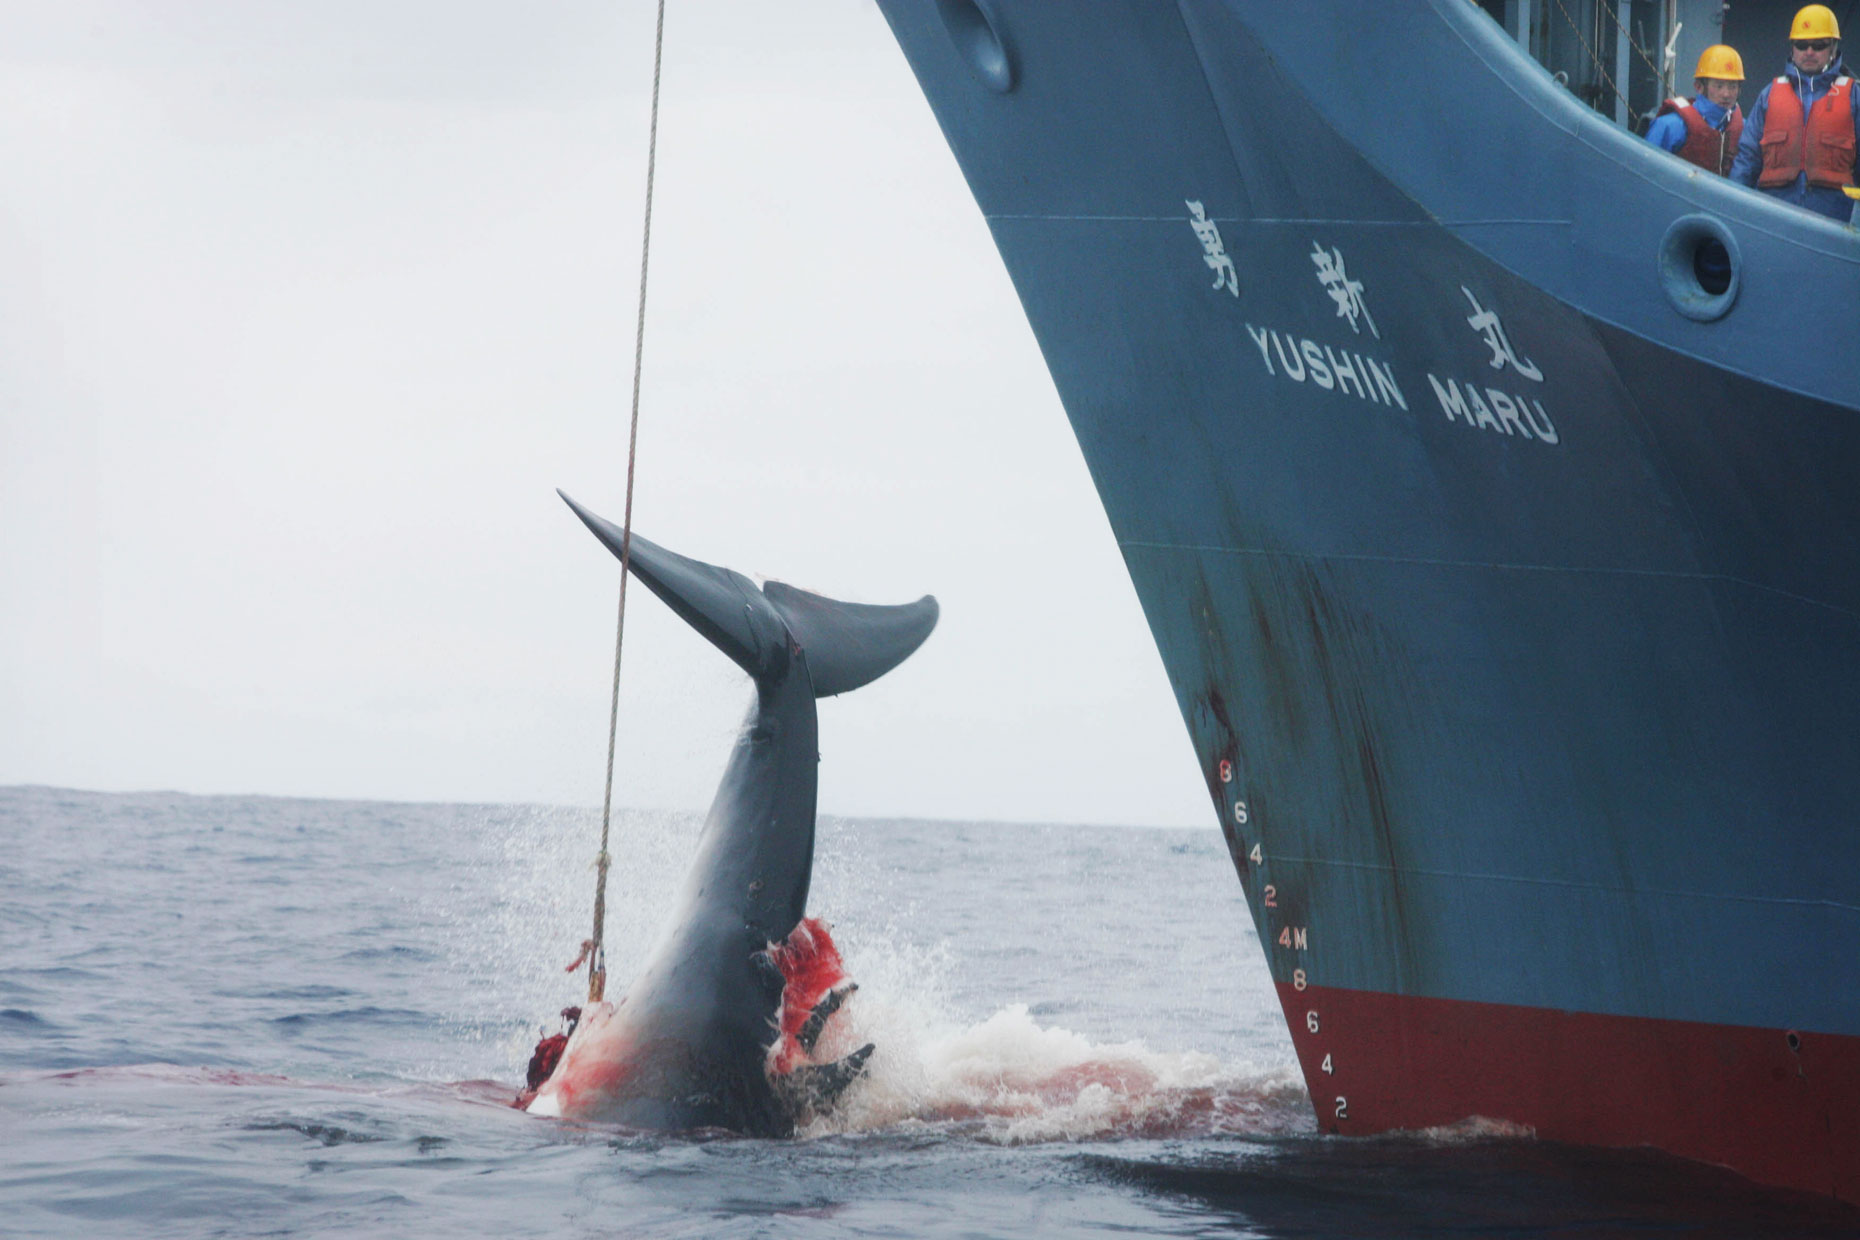 Whale and Japanese whaling ship, by Scotland Greenpeace photographer